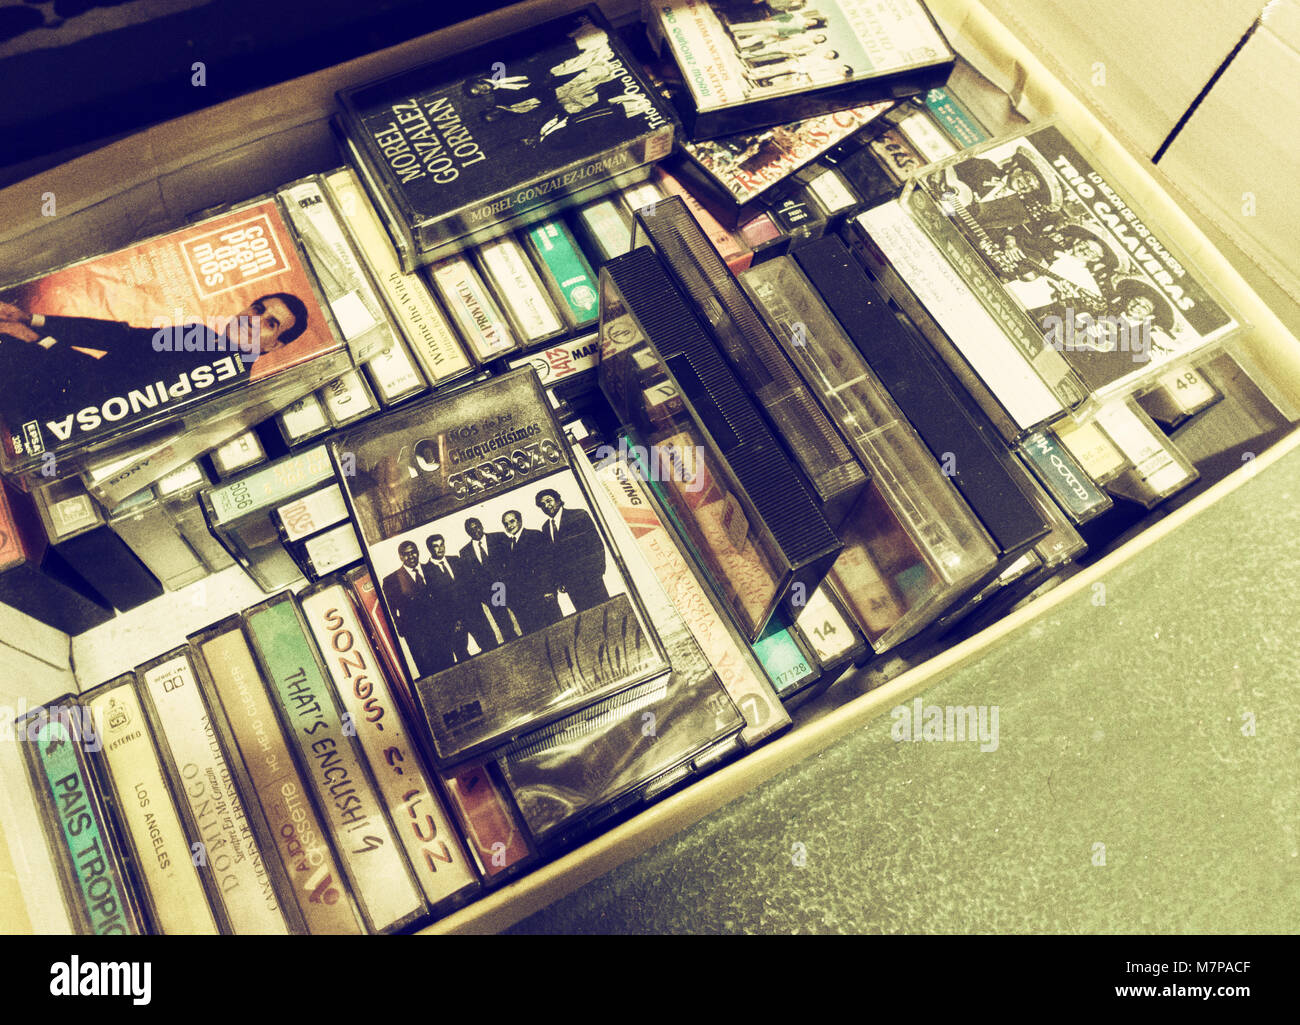 Box of cassette tapes in charity shop in Spain - Stock Image